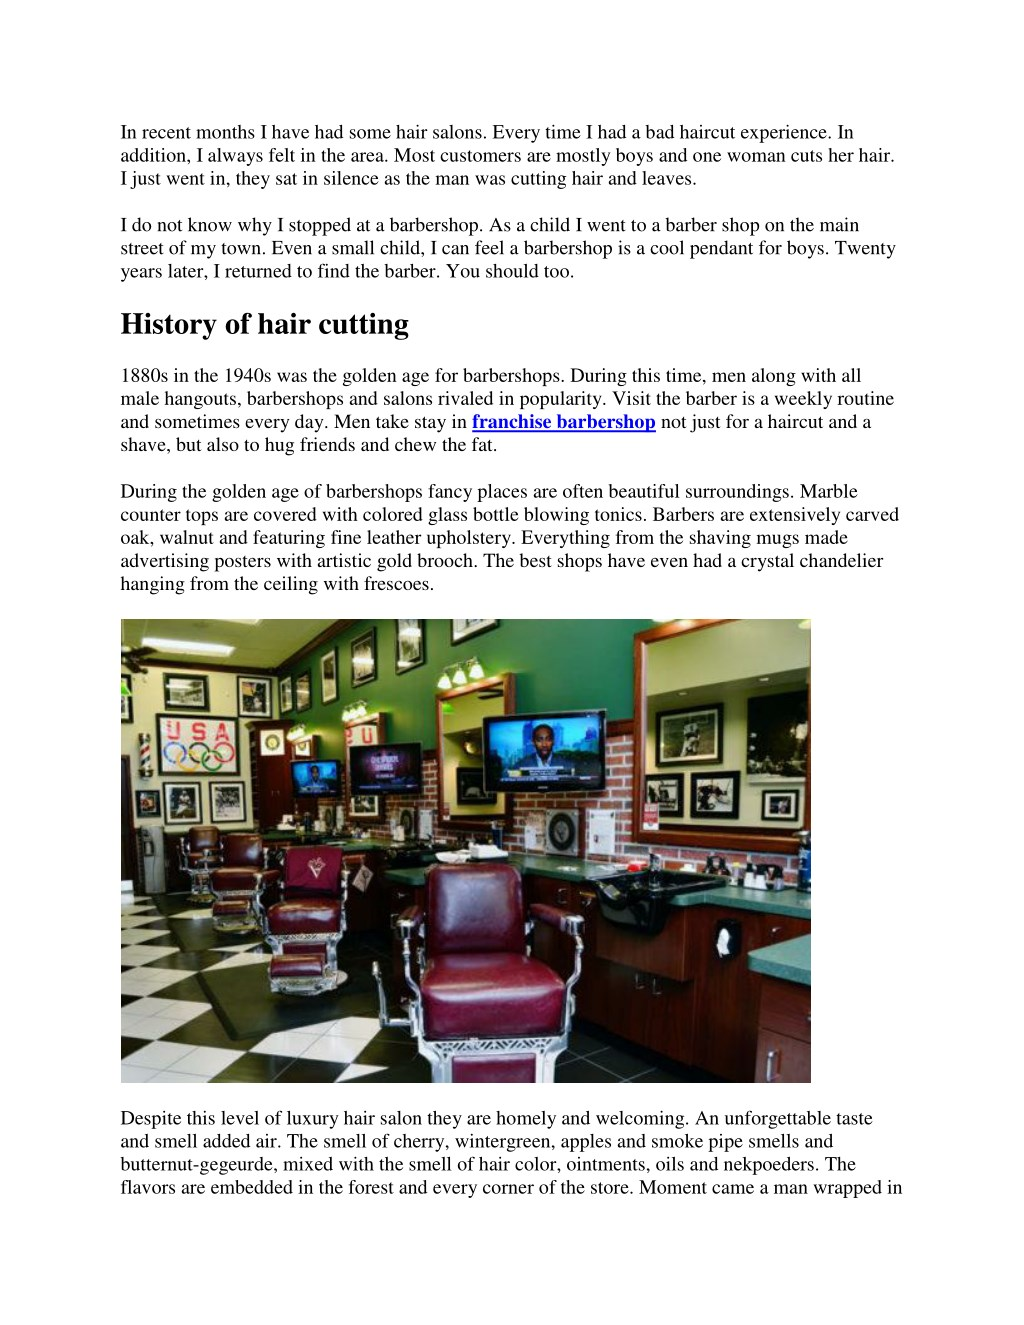 PPT - Franchise barbershop and salon combination PowerPoint